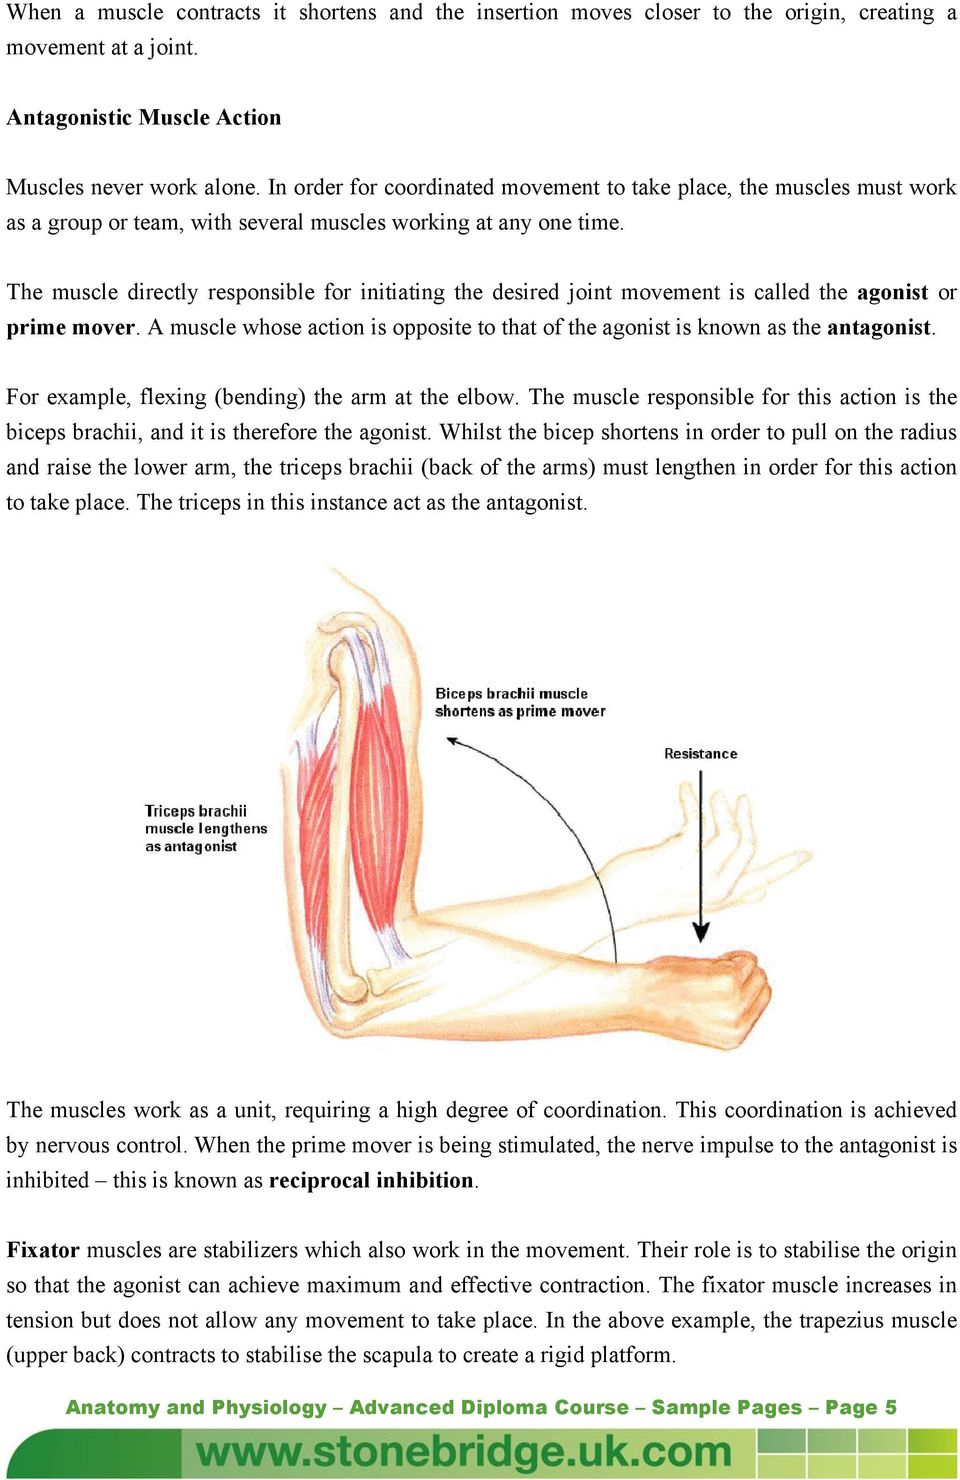 Muscle Fibres. Anatomy and Physiology Advanced Diploma Course Sample ...